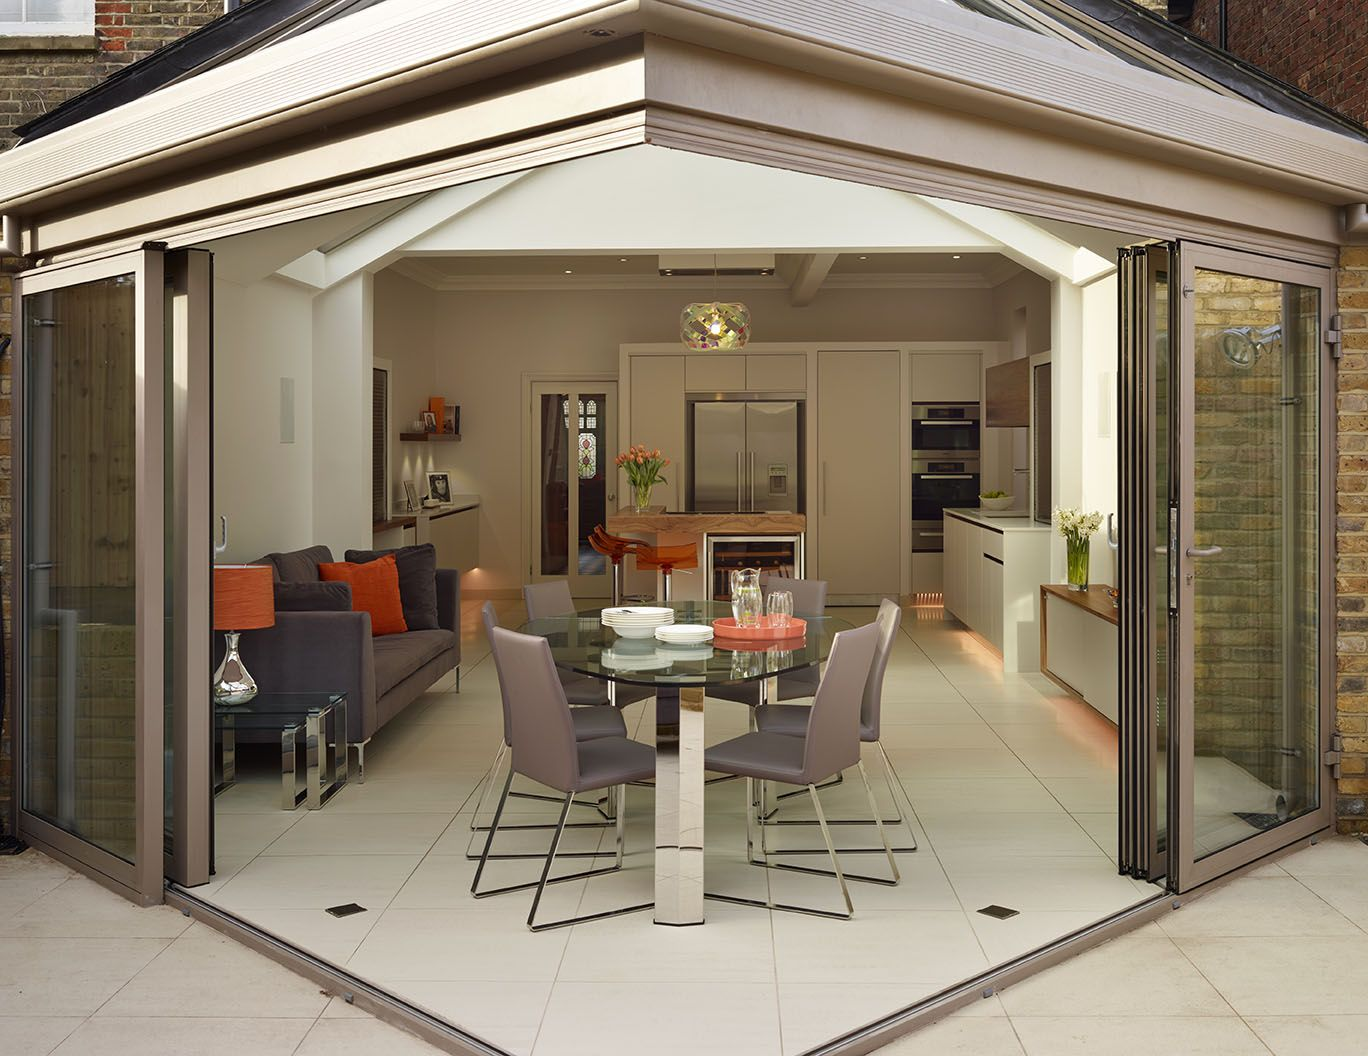 Roundhouse bespoke kitchen contributes to a seamless flow ... on Bespoke Outdoor Living id=62468